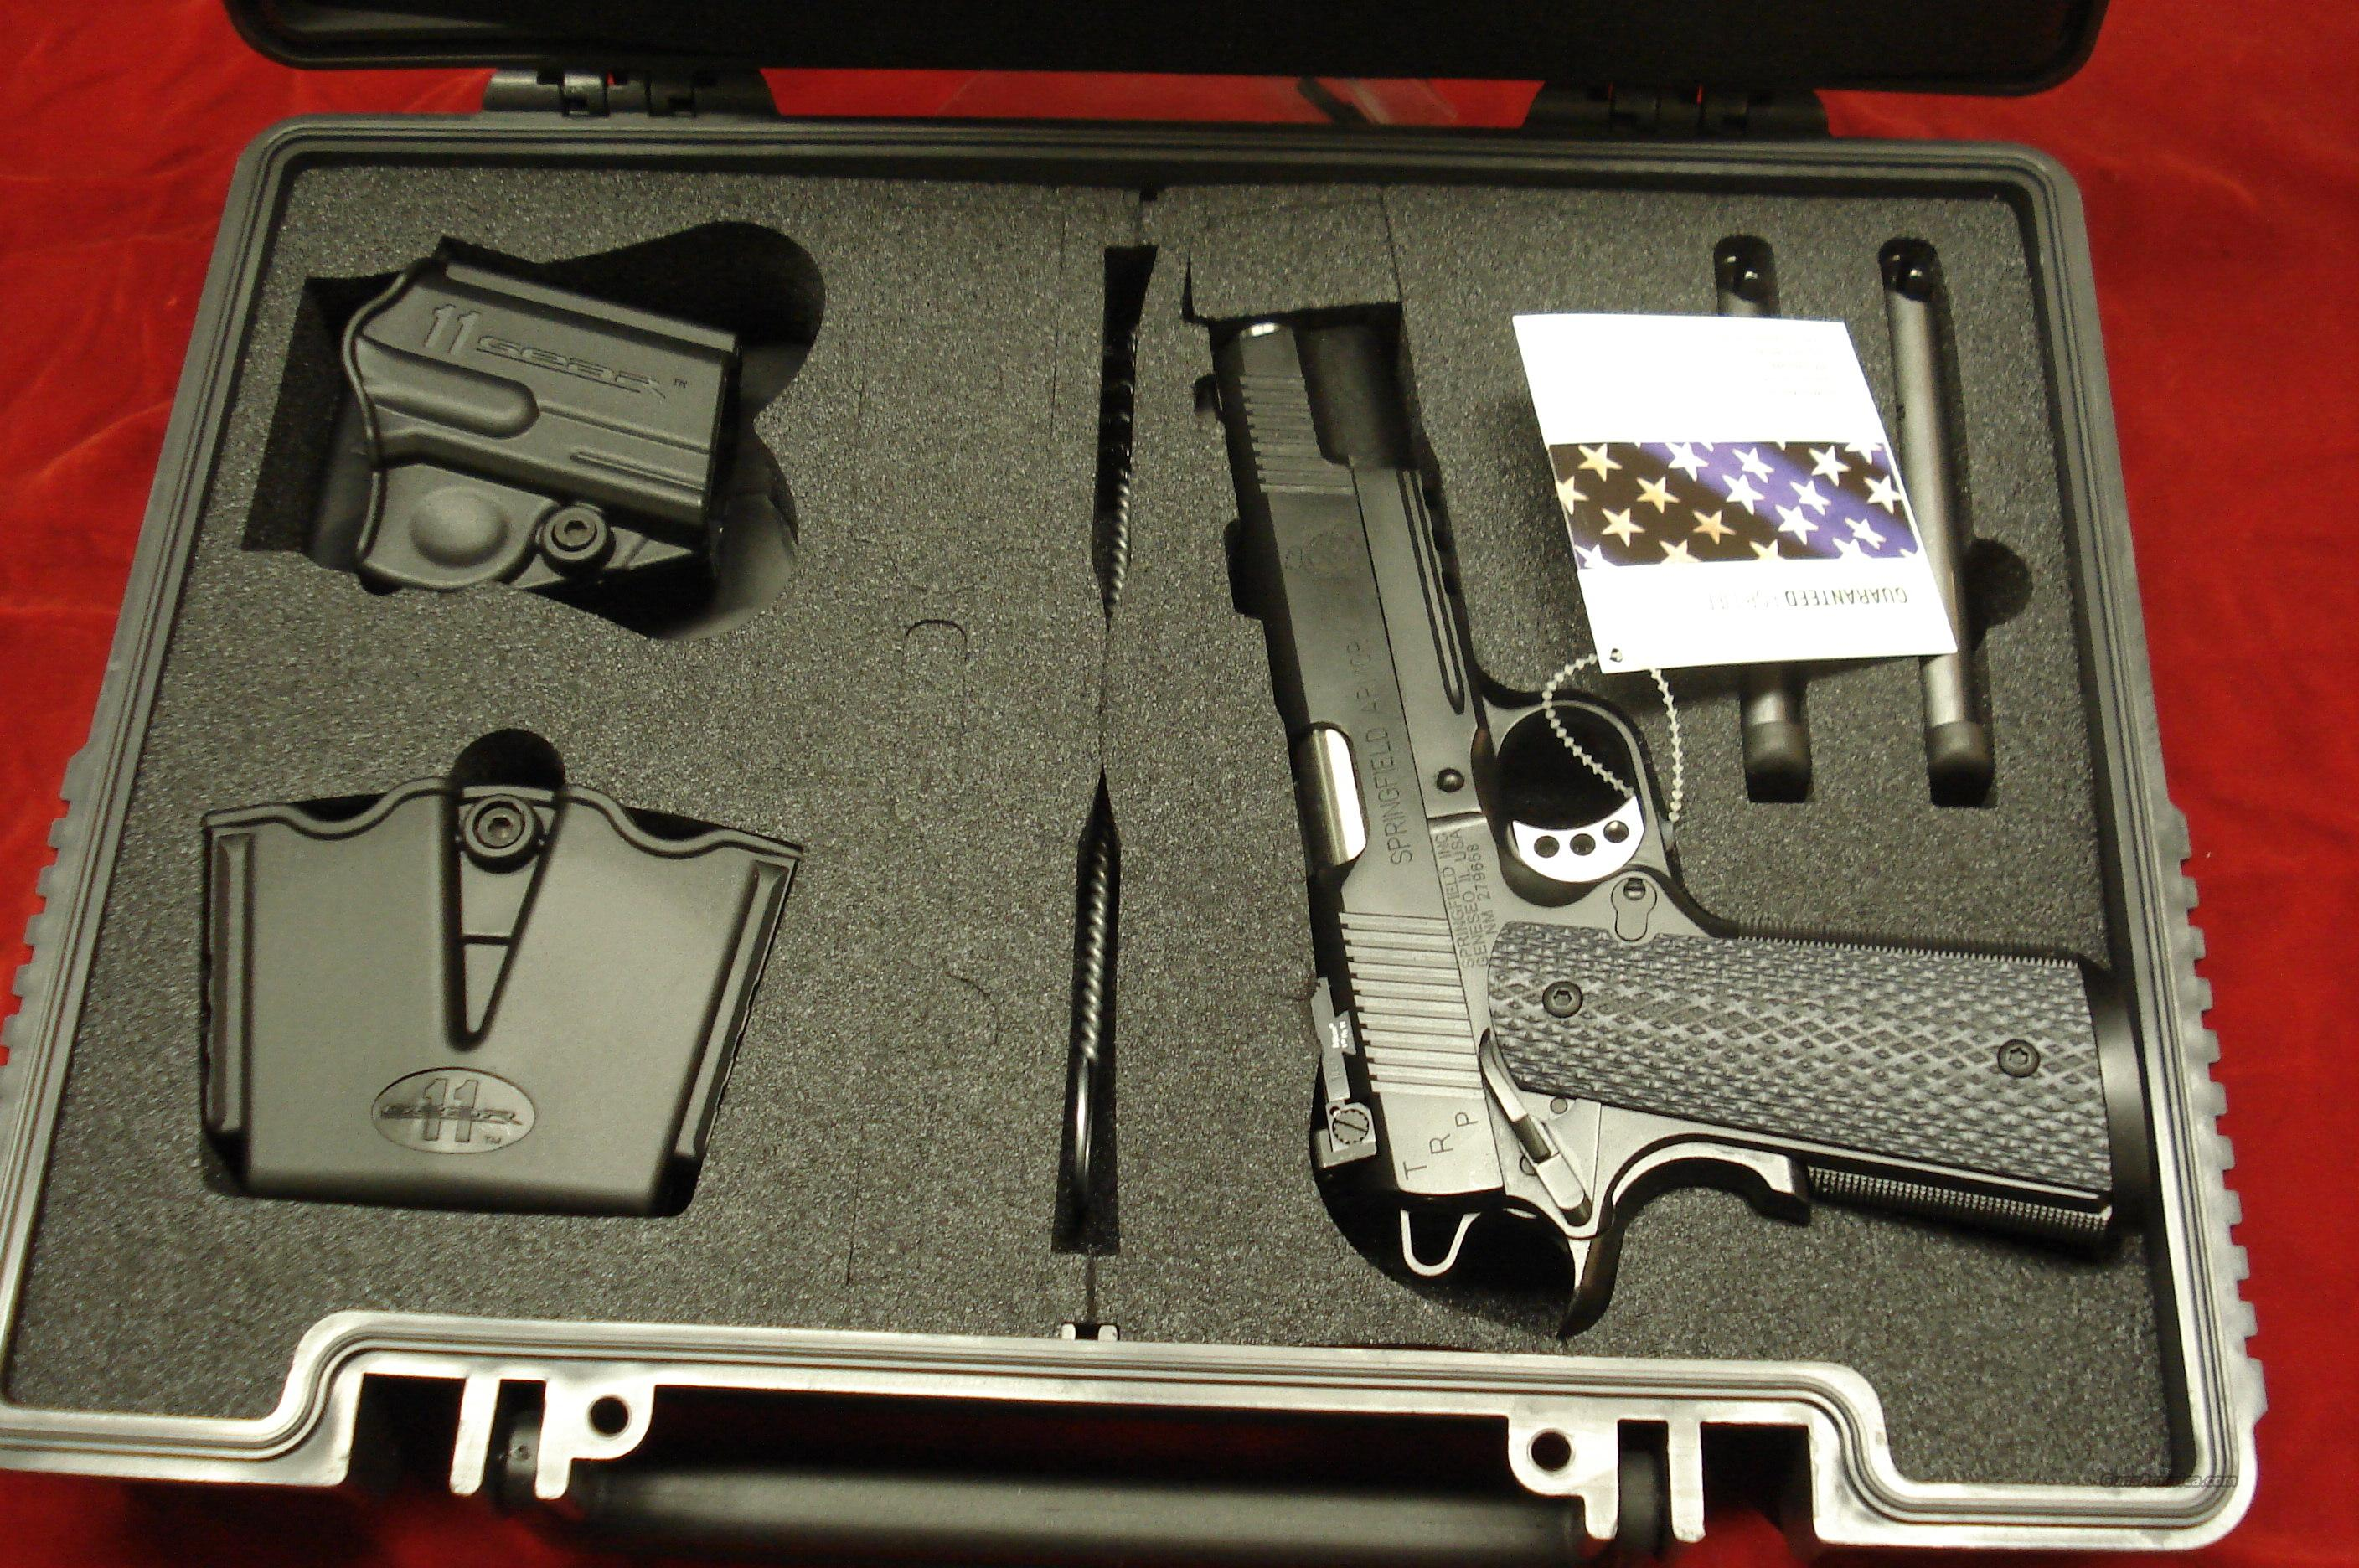 SPRINGFIELD ARMORY TRP OPERATOR W/LIGHT RAIL (PC9105LP) NEW  Guns > Pistols > Springfield Armory Pistols > 1911 Type